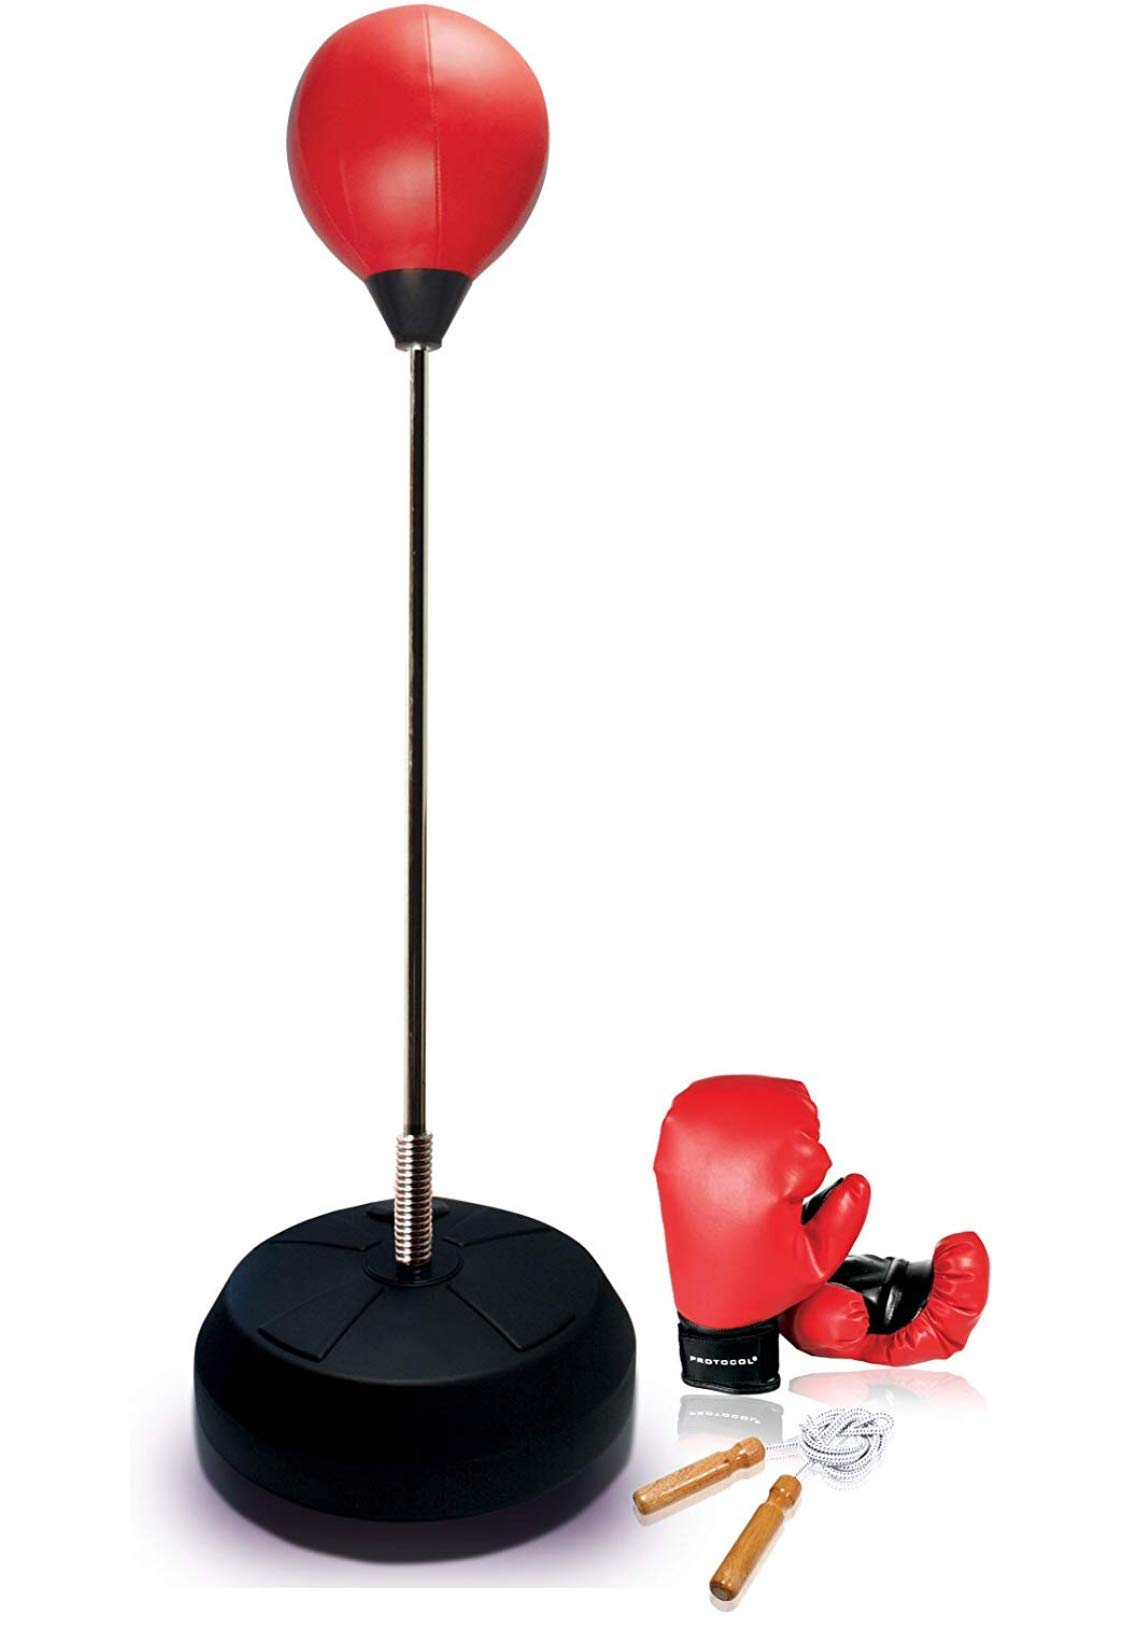 Protocol All-in-One Boxing Set | Punching Ball with Adjustable Height Stand That Withstands Tough Beatings| Includes Jump Rope, Comfortable Boxing Gloves, and Inflation Pump | Great Value by Protocol (Image #1)